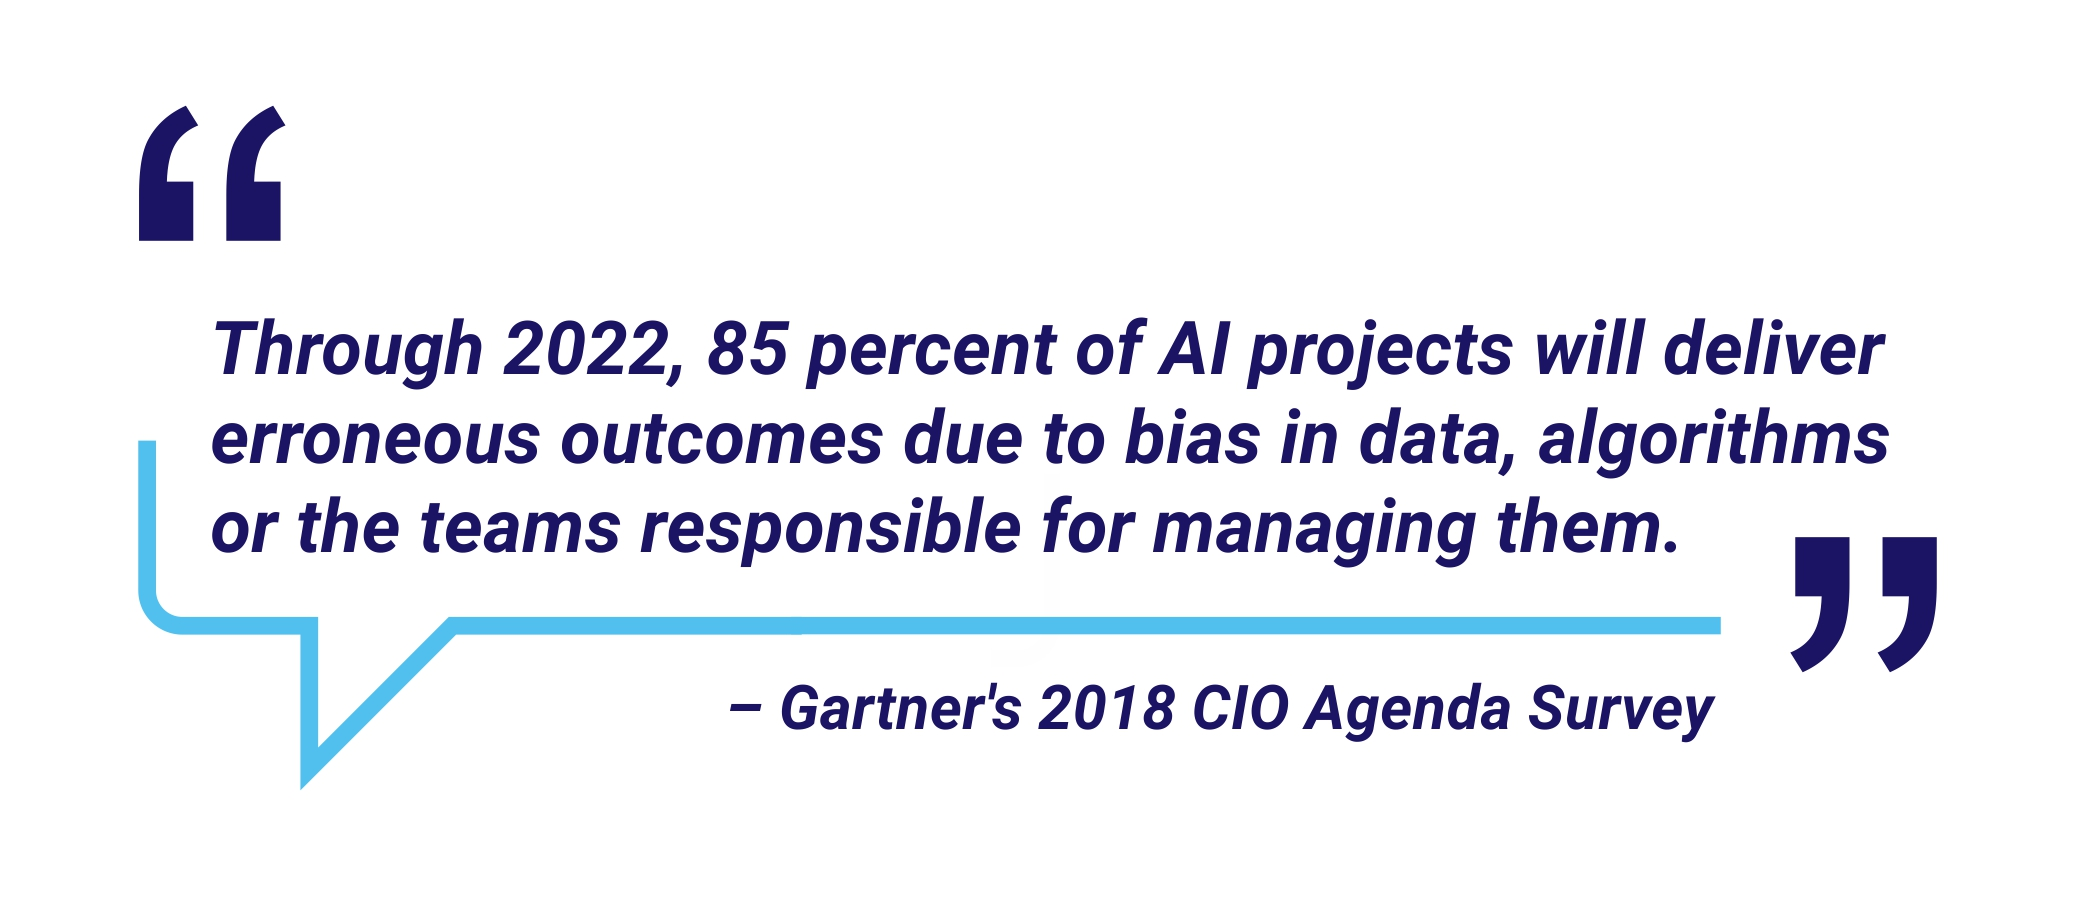 Percent of AI projects